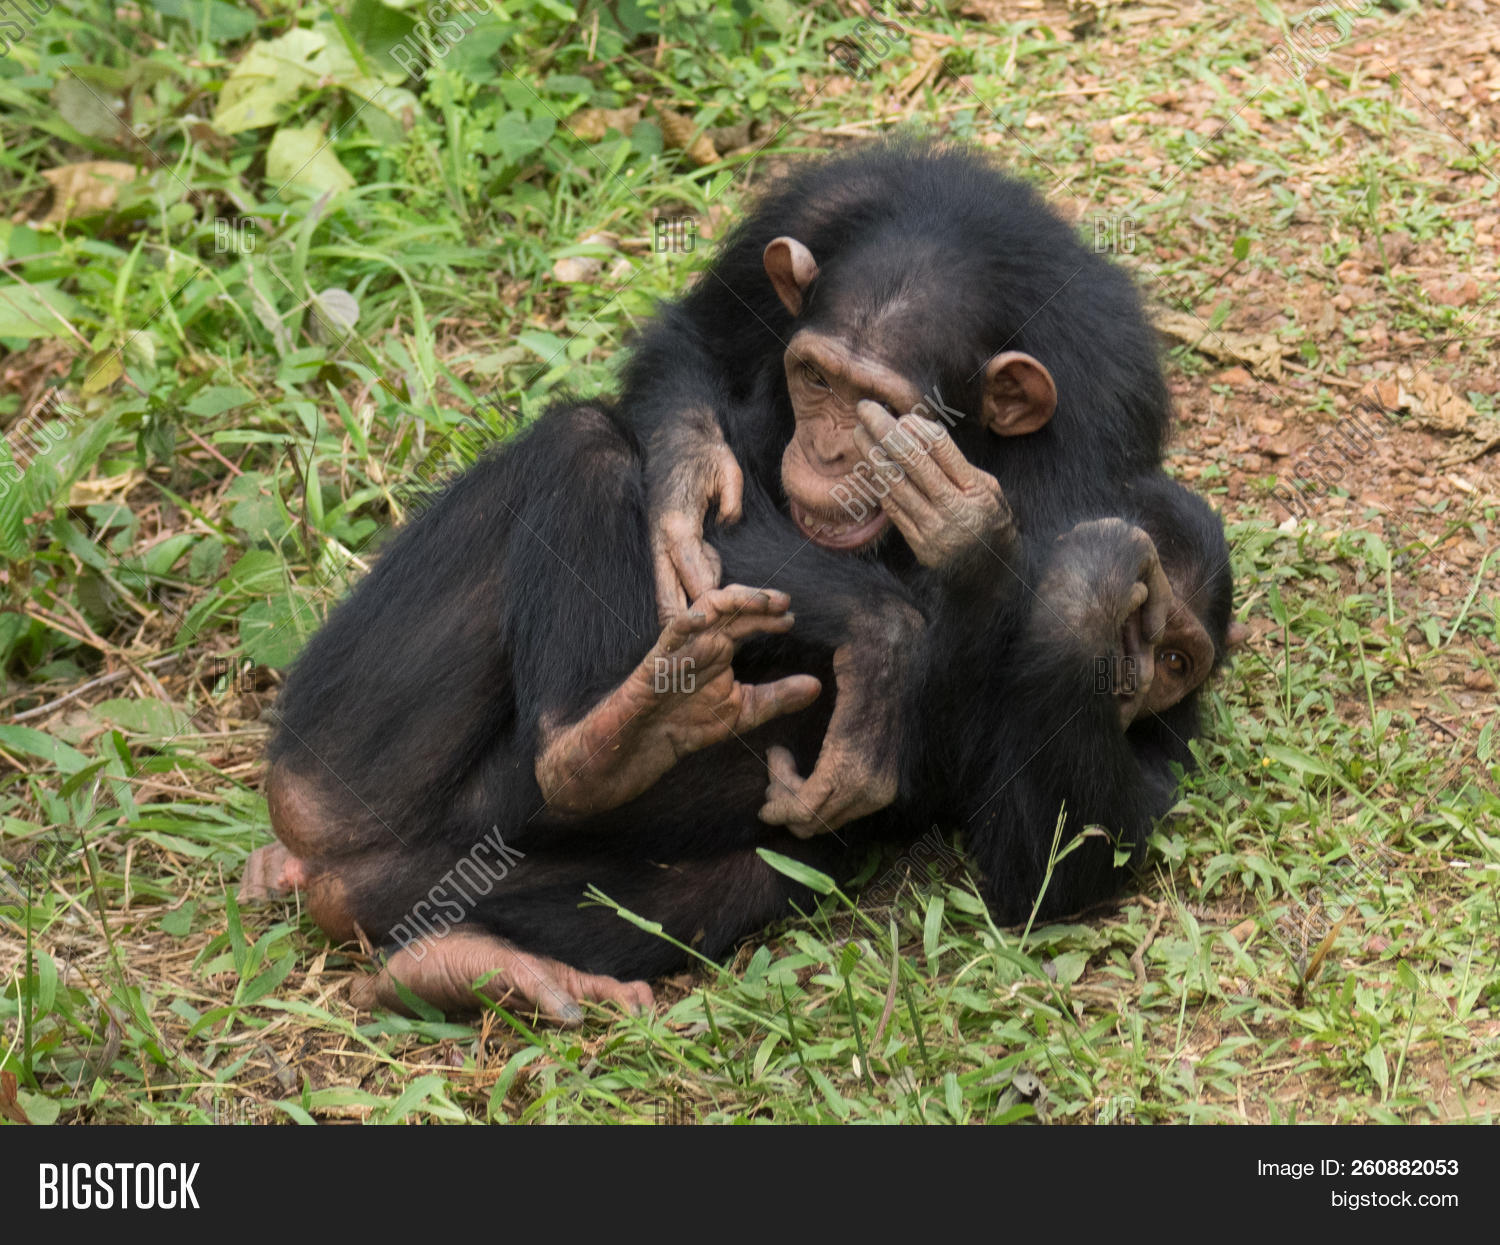 Chimpanzee Consists Image & Photo (Free Trial) | Bigstock